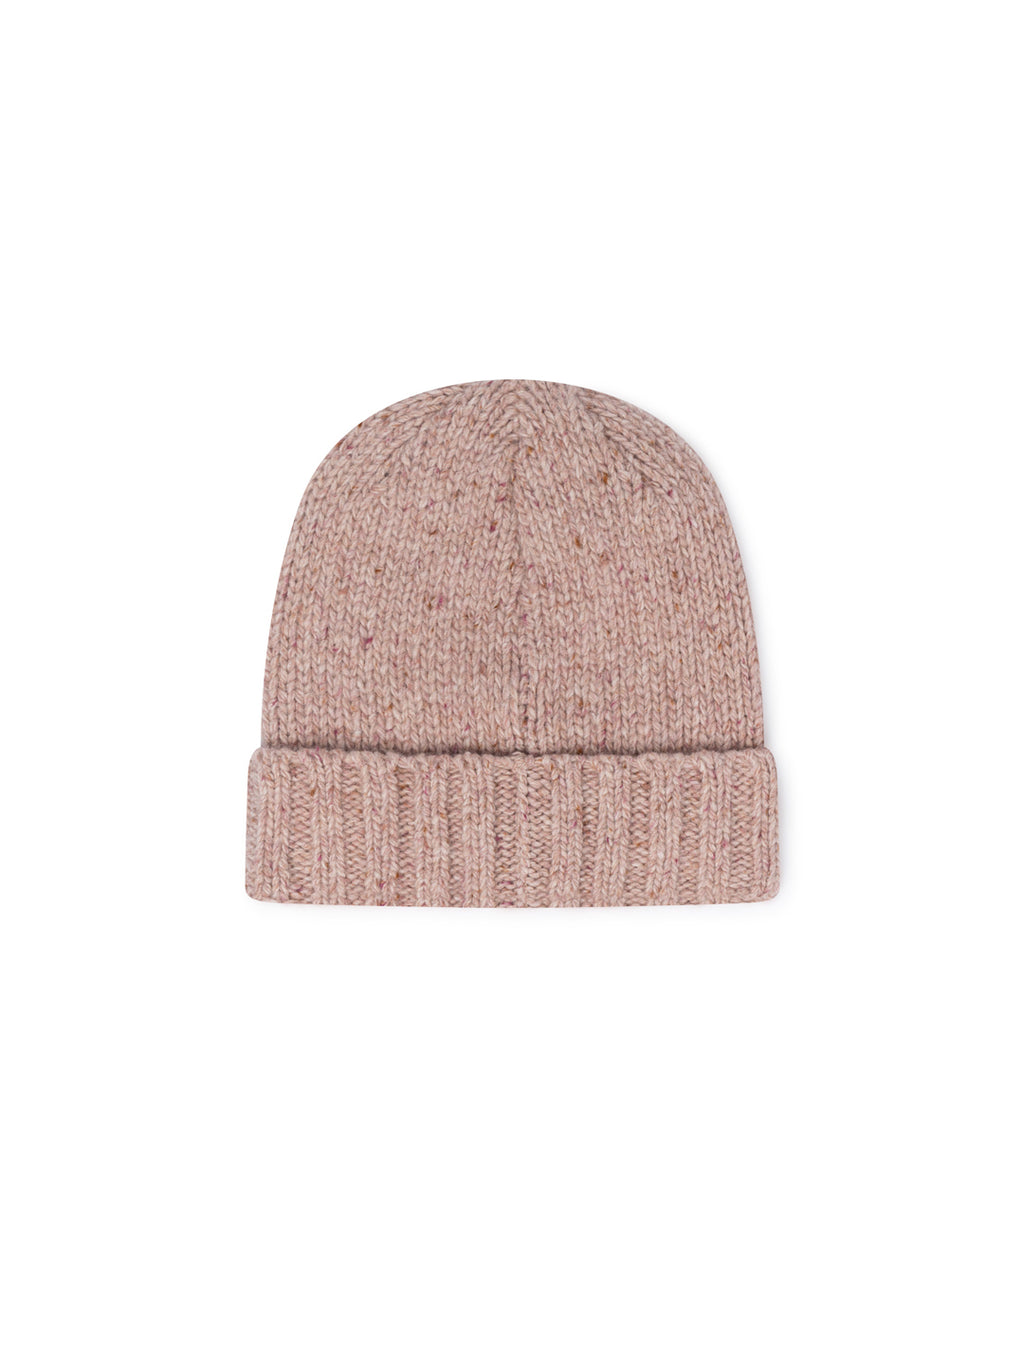 TWOTHIRDS Headwear: Jurma Beanie - Dusty Pink back